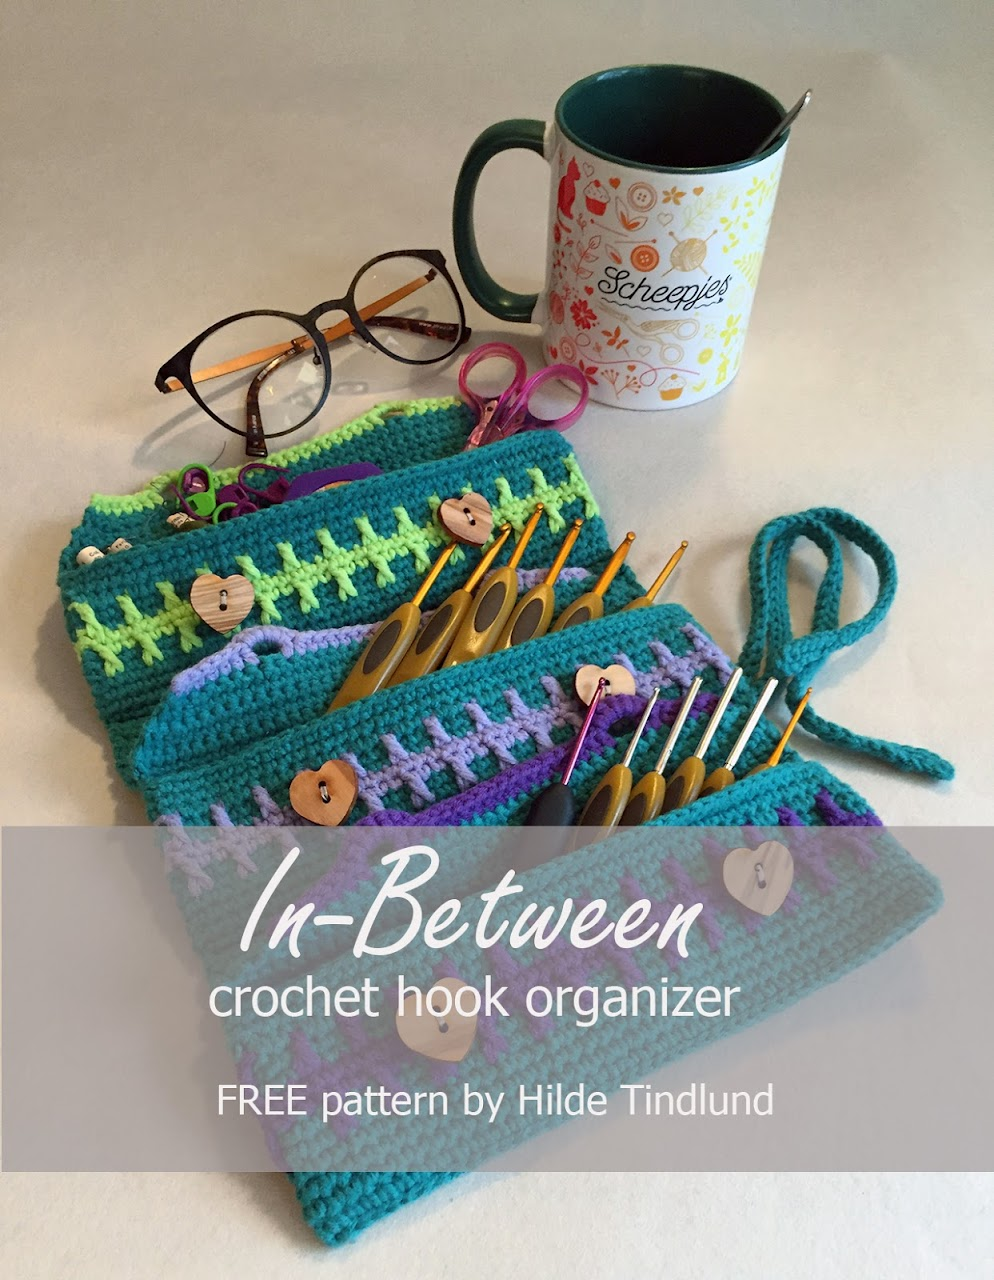 In-Between crochet hook organizer. FREE crochet pattern by www.roadrash.no